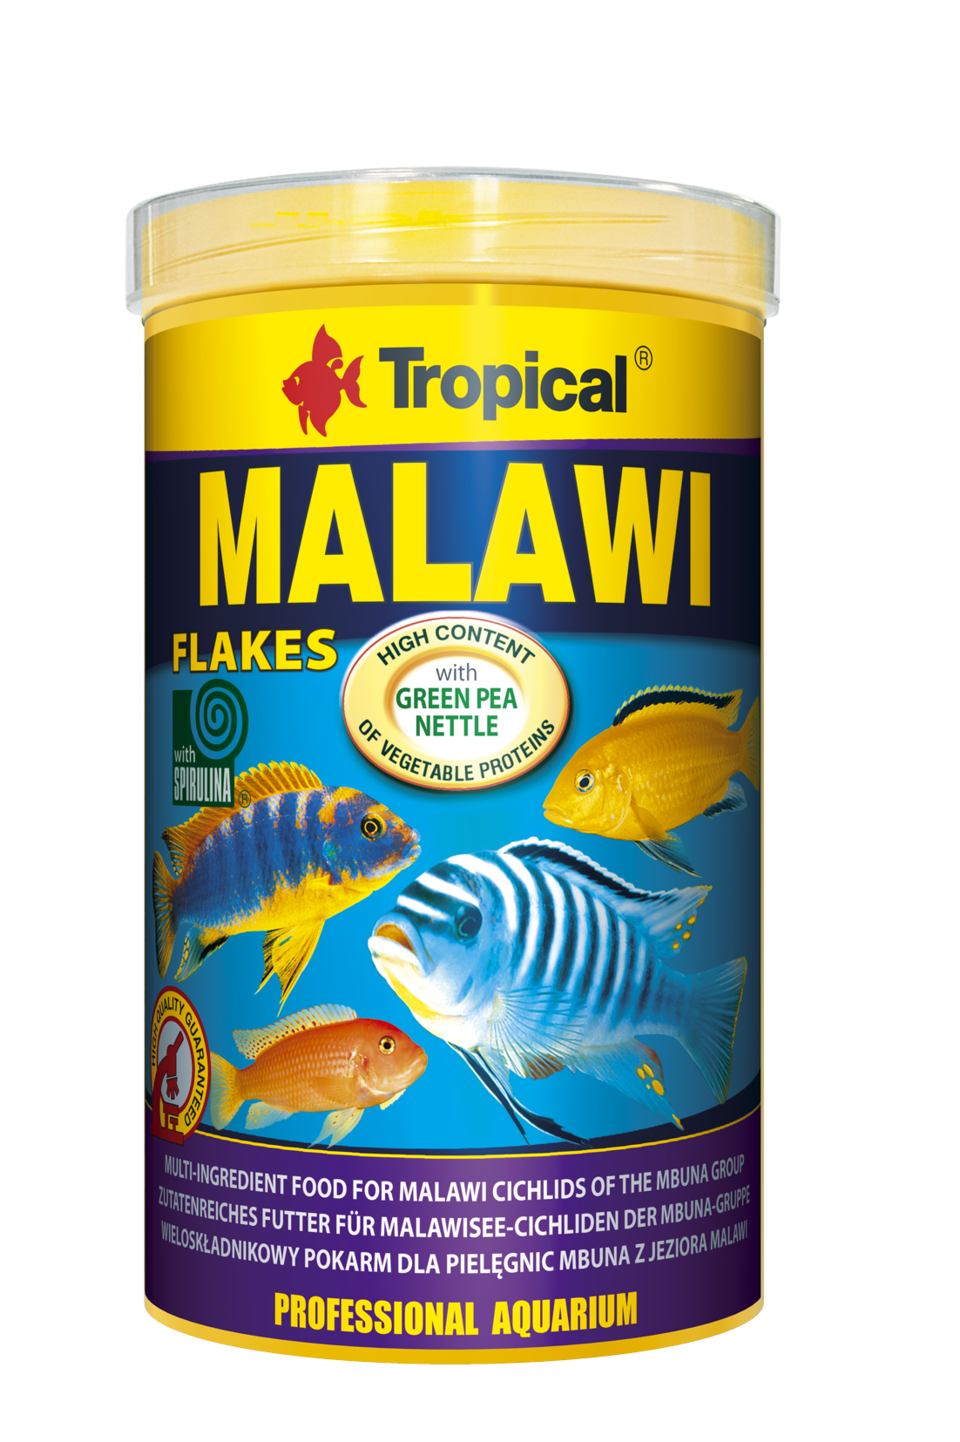 Tropical malawi 1000ml nourriture de base en flocons pour for Tropical nourriture poisson